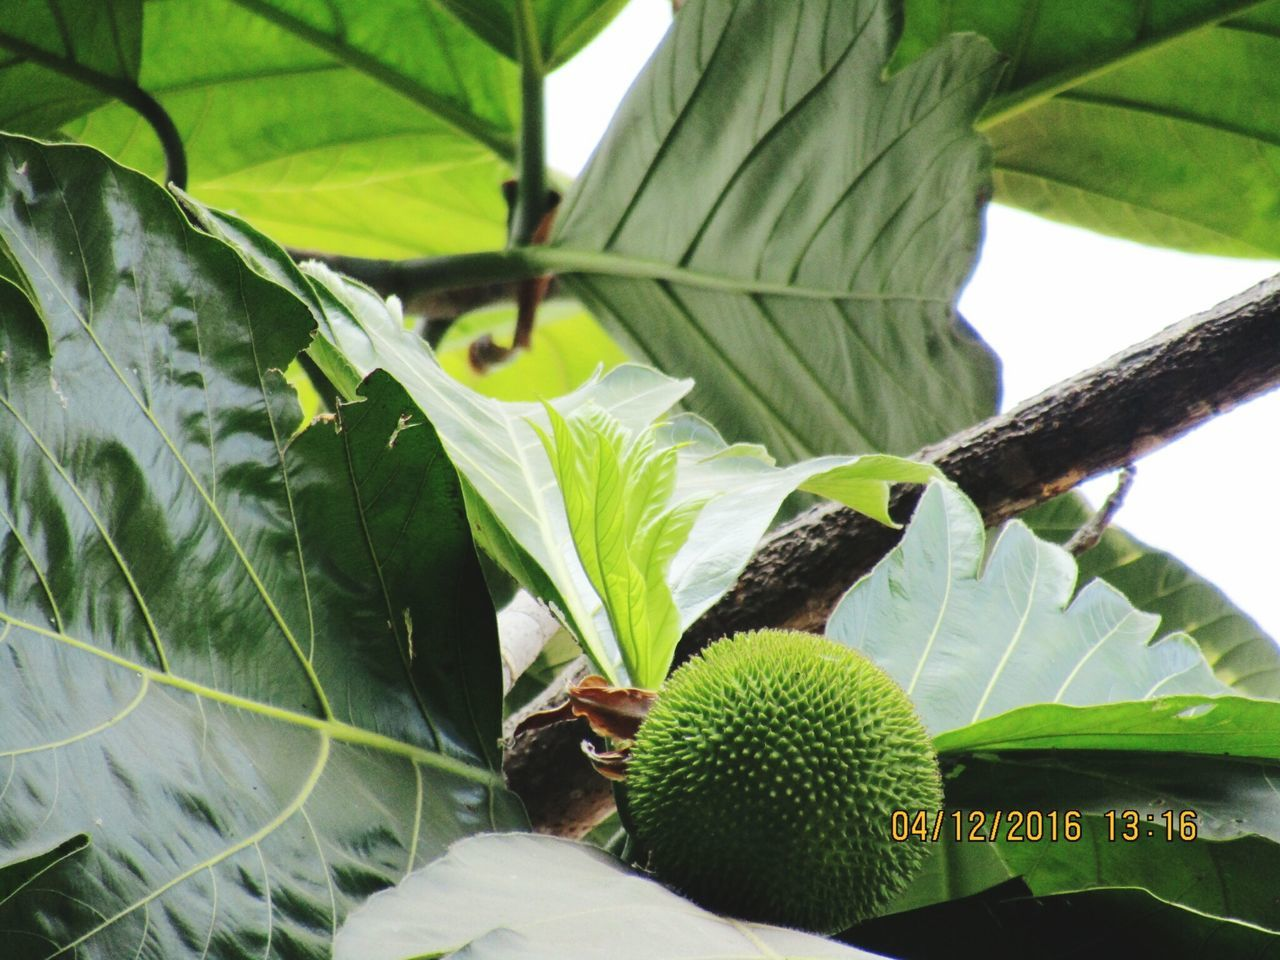 leaf, growth, green color, plant, nature, day, no people, close-up, outdoors, beauty in nature, banana tree, freshness, fragility, animal themes